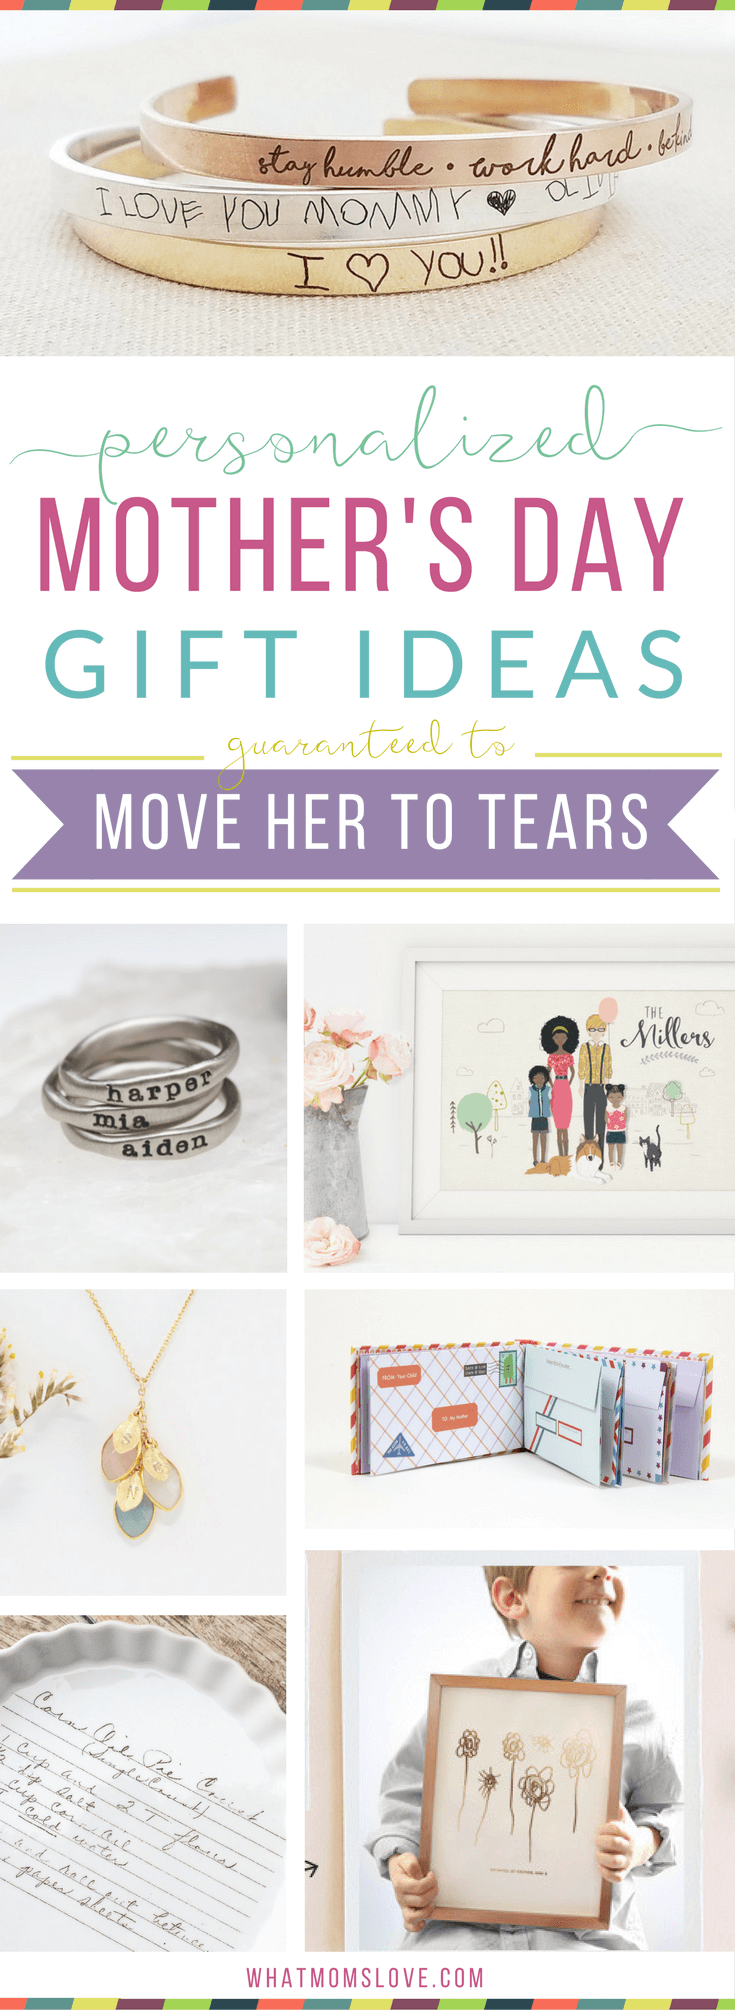 Unique Personalized Gift Ideas For Mothers Day